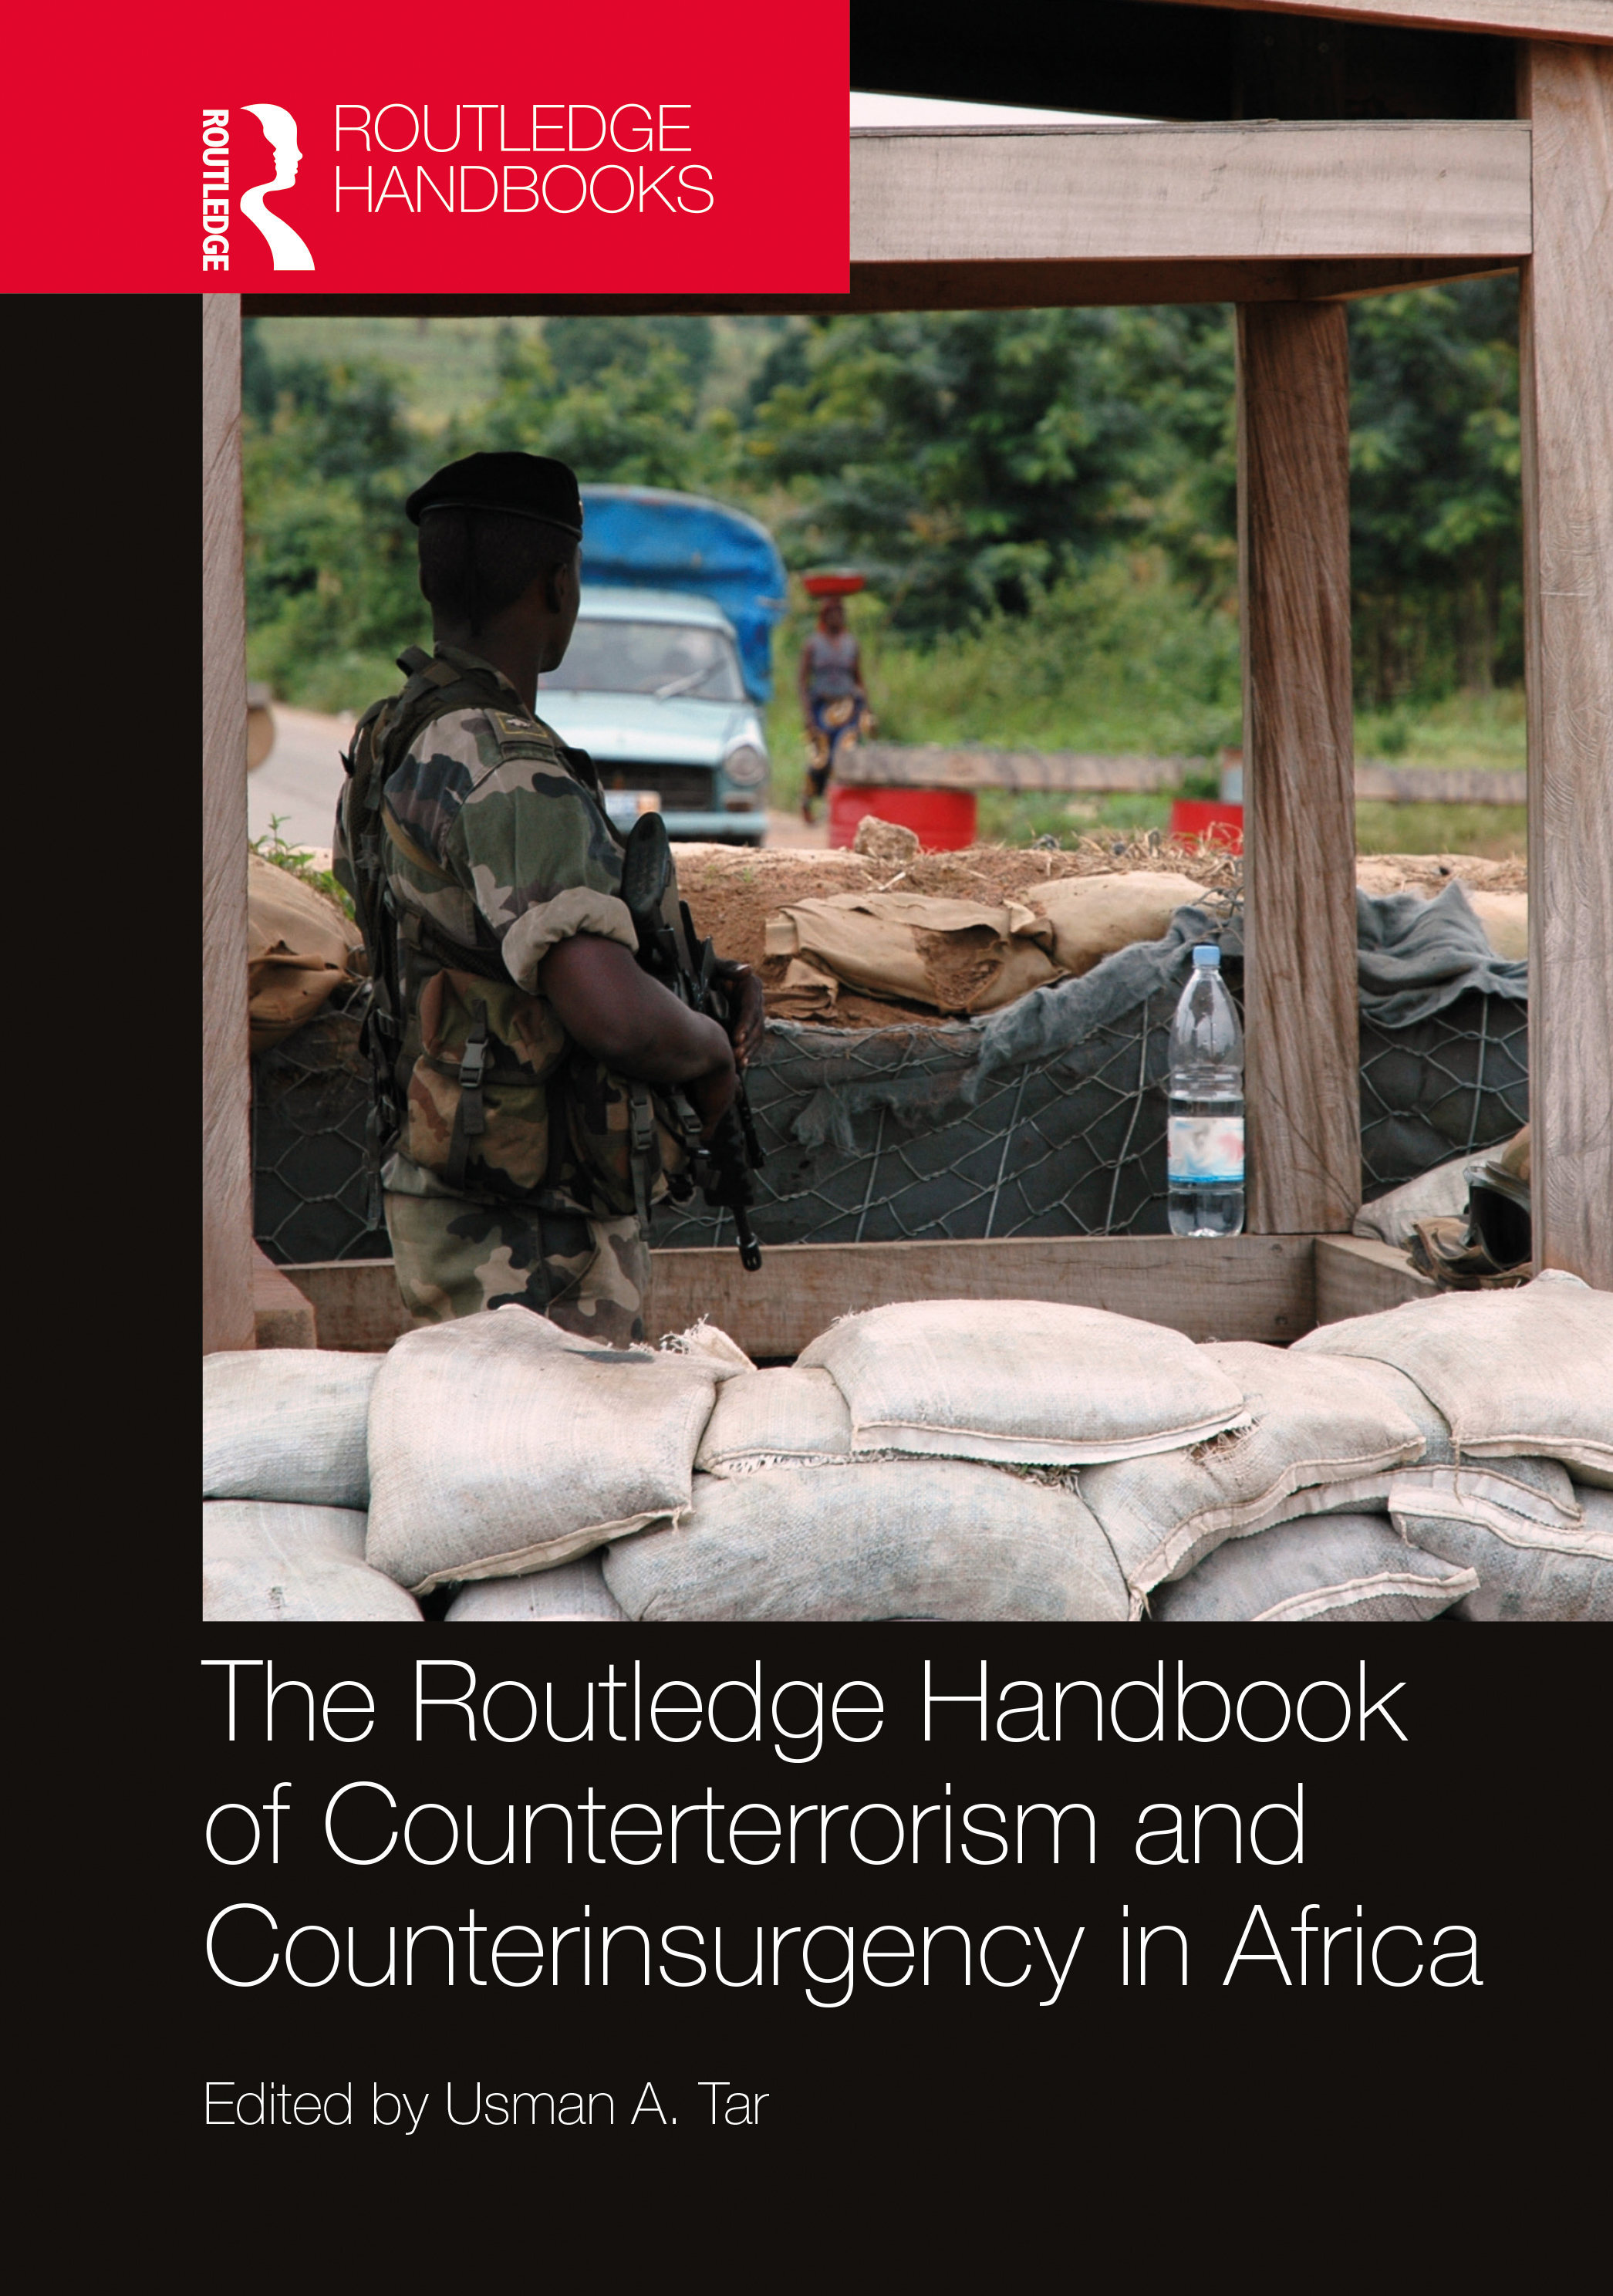 Counterterrorism and postcolonial crisis in Africa